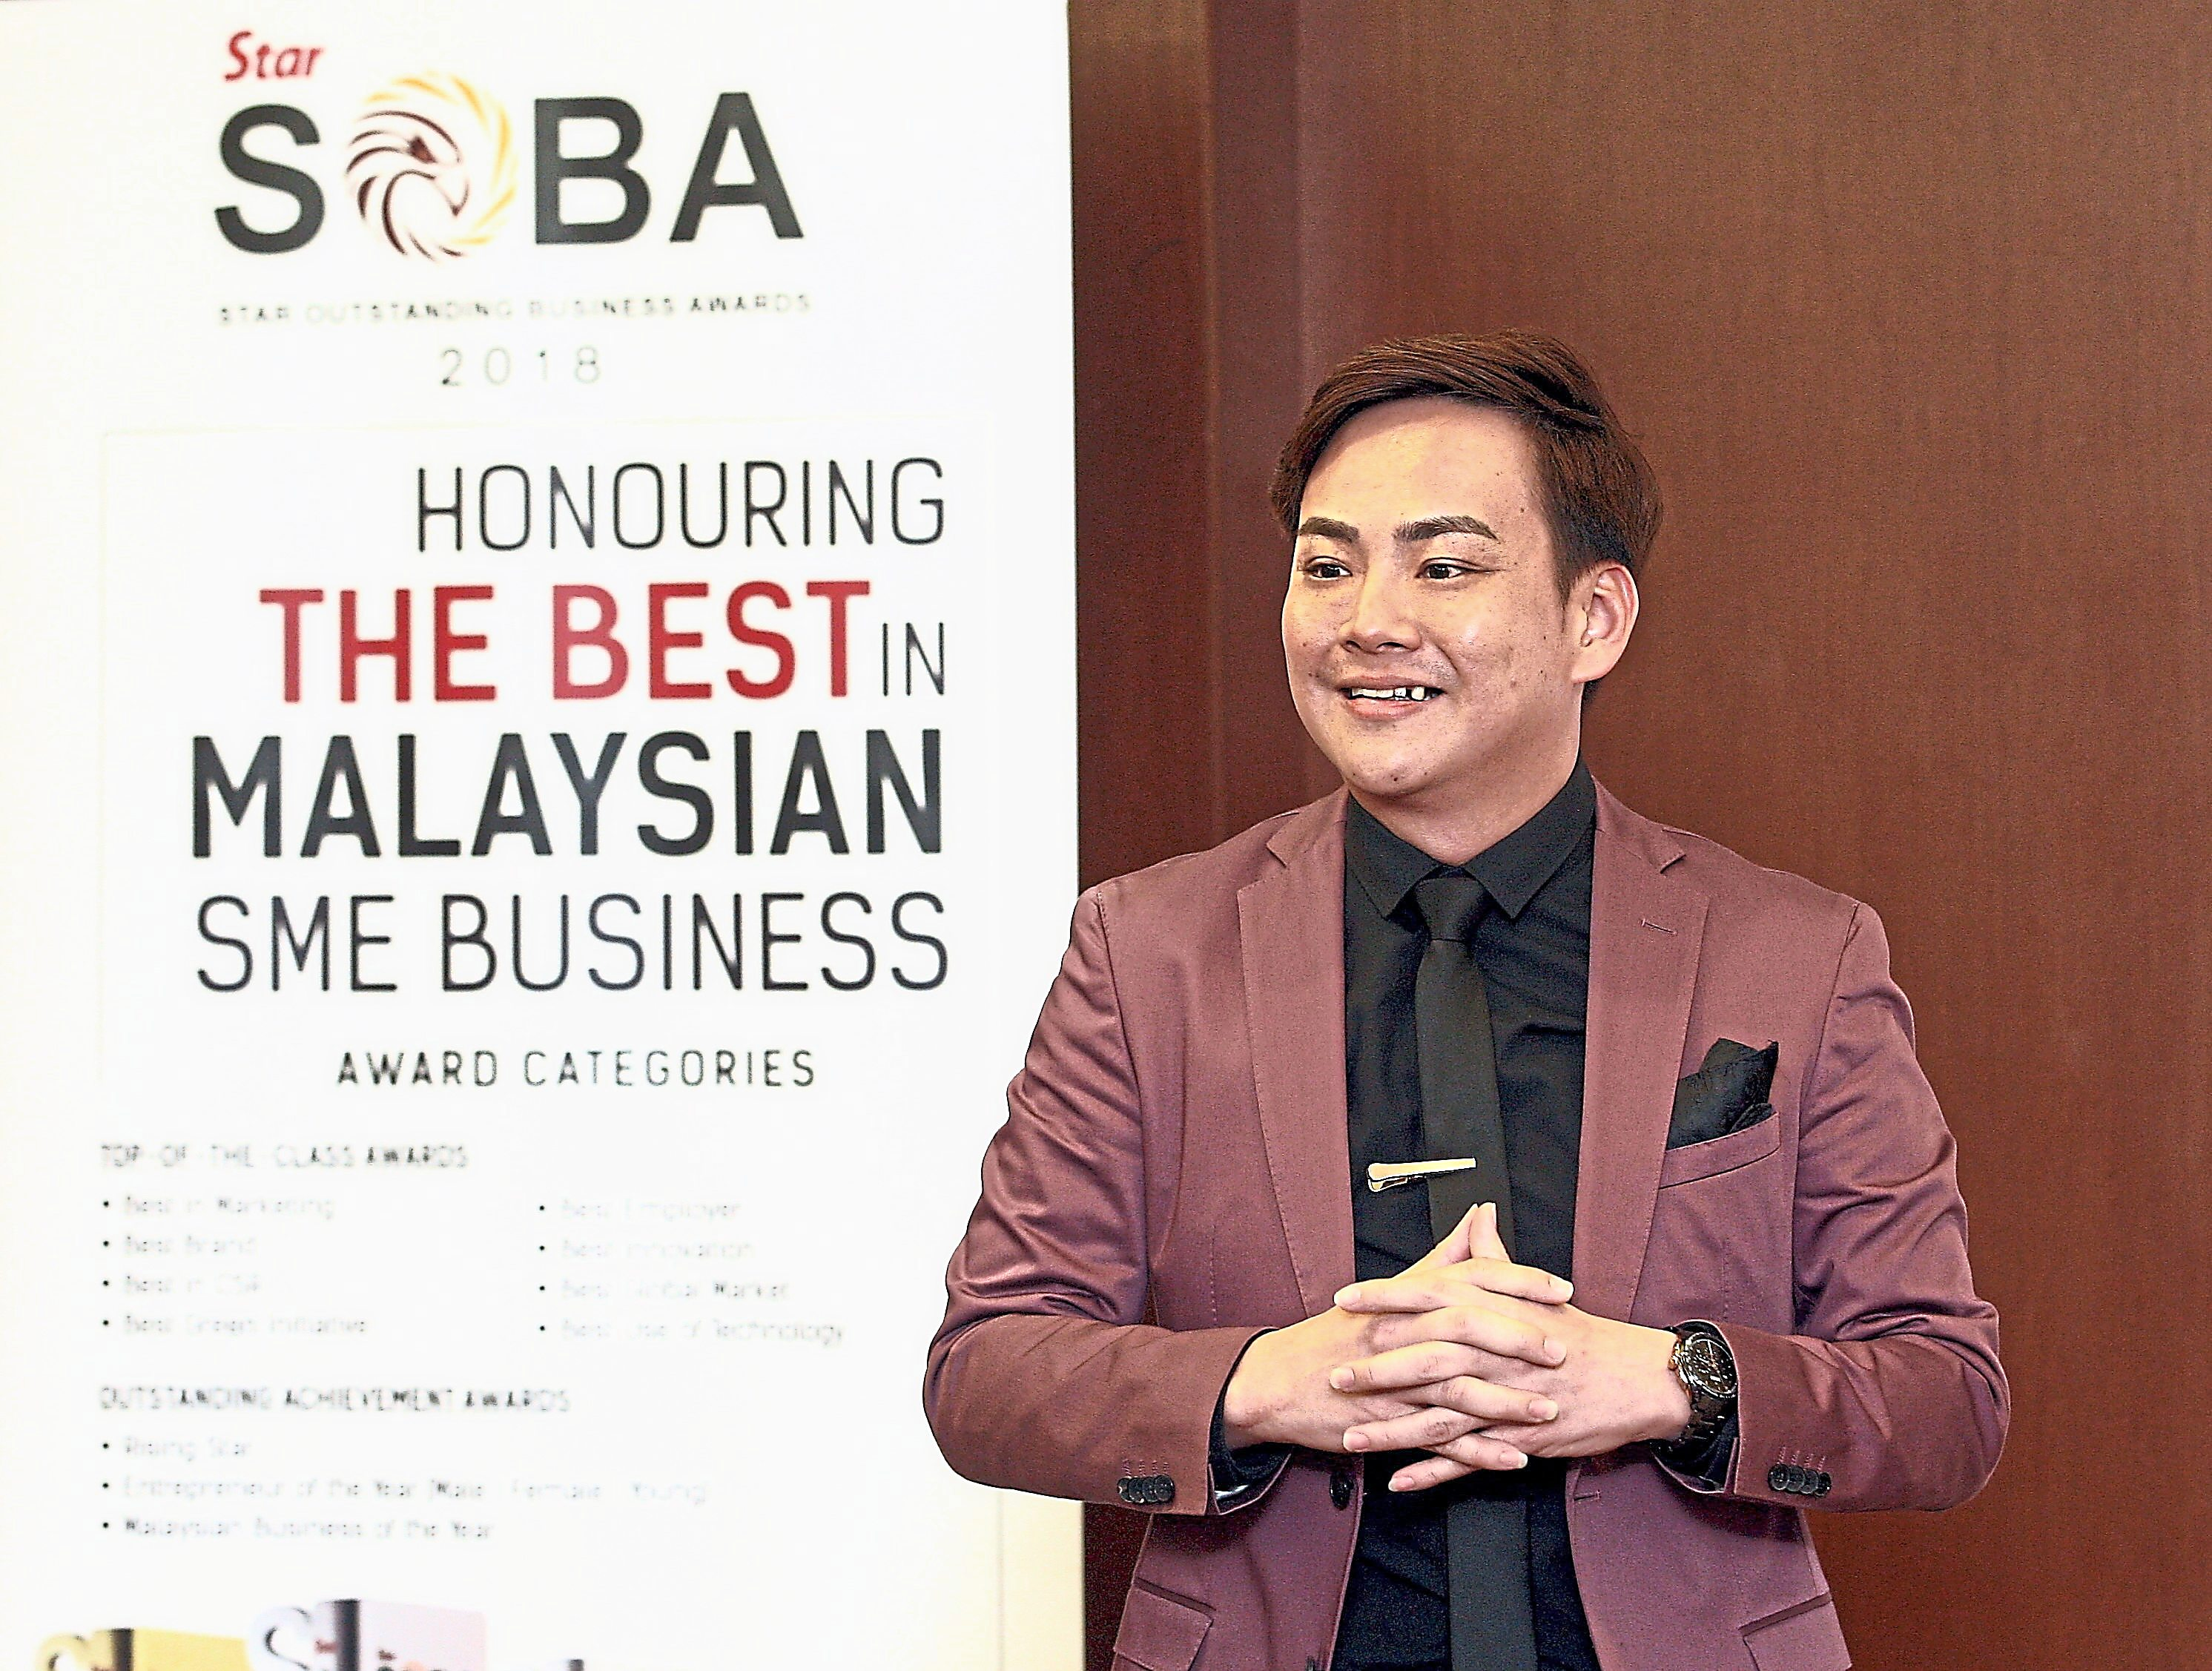 Khiu, a past recipient of SOBA's Young Entrepreneur of the Year award, says the award increased media exposure for his company in print and online platforms.